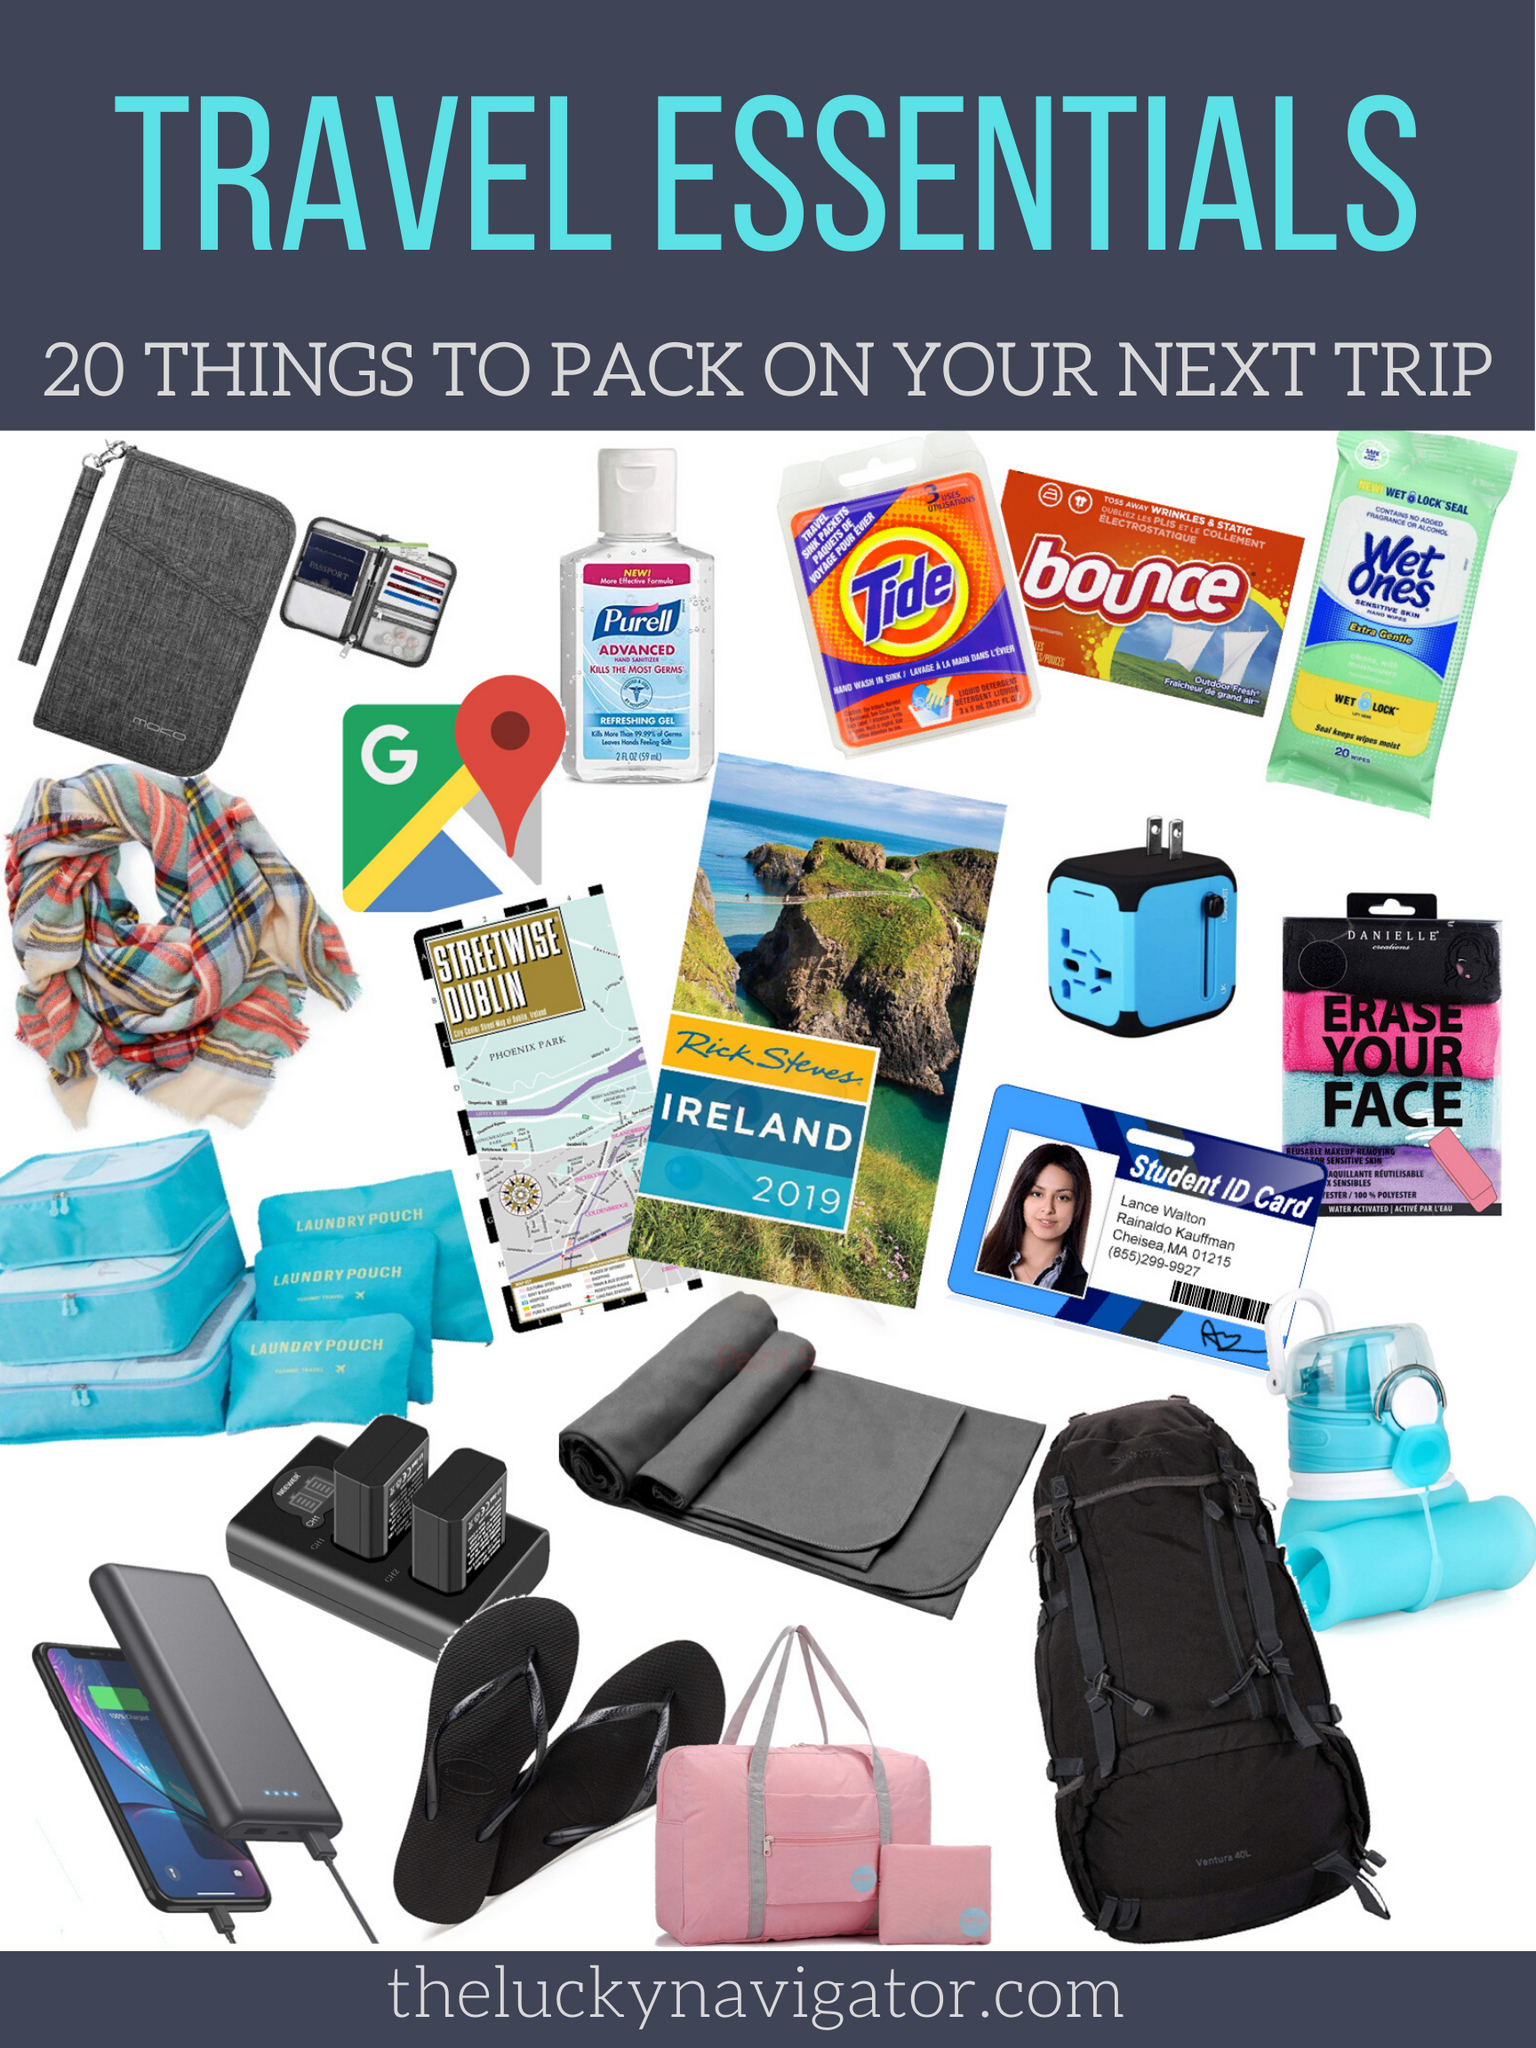 20 travel essentials in a collage